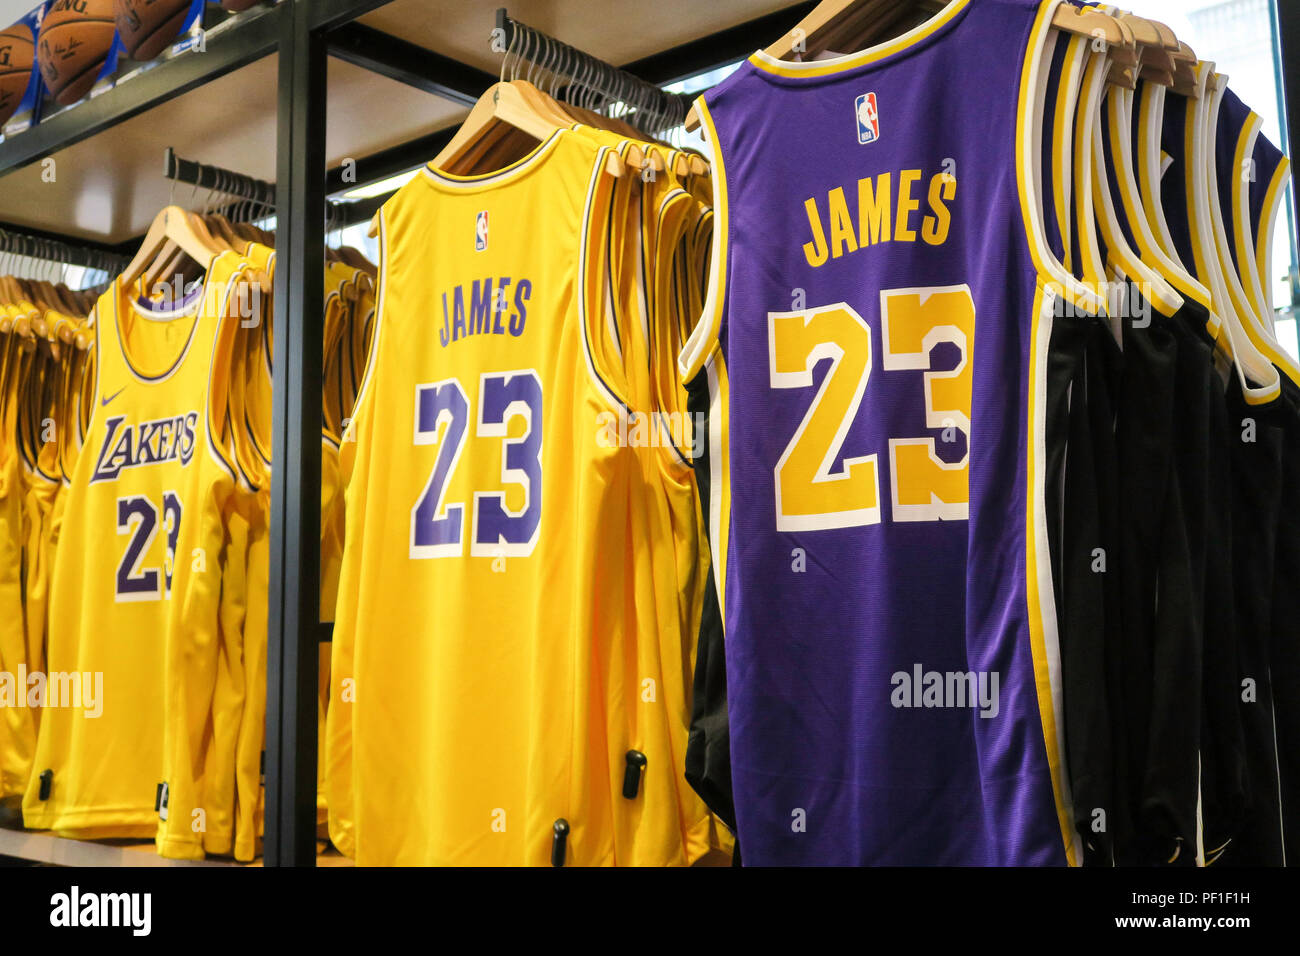 reputable site ee611 25a0a Lebron James and Lakers Branded Merchandise at the NBA Store ...